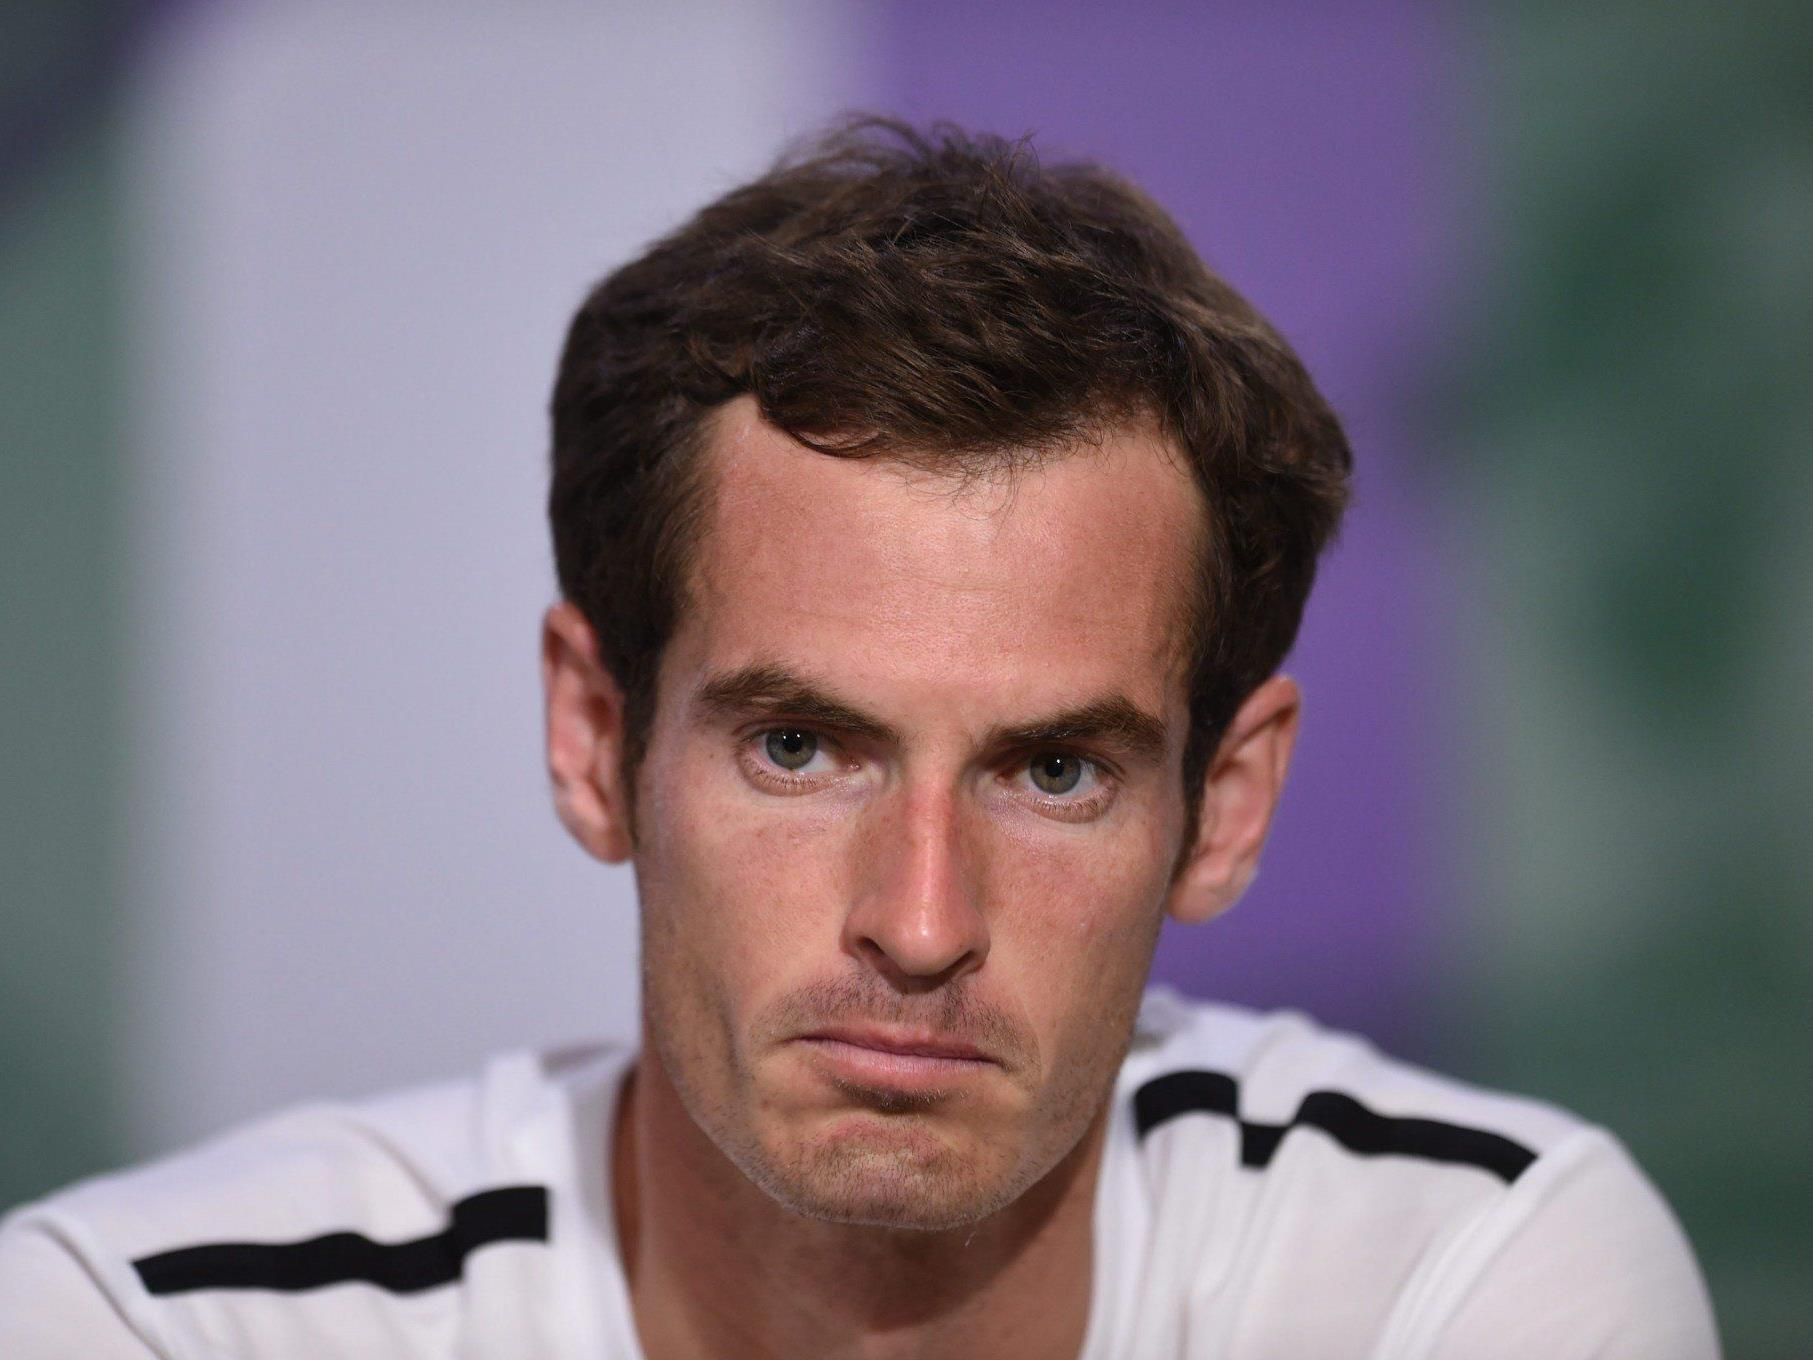 Endstation für Andy Murray in Wimbledon.